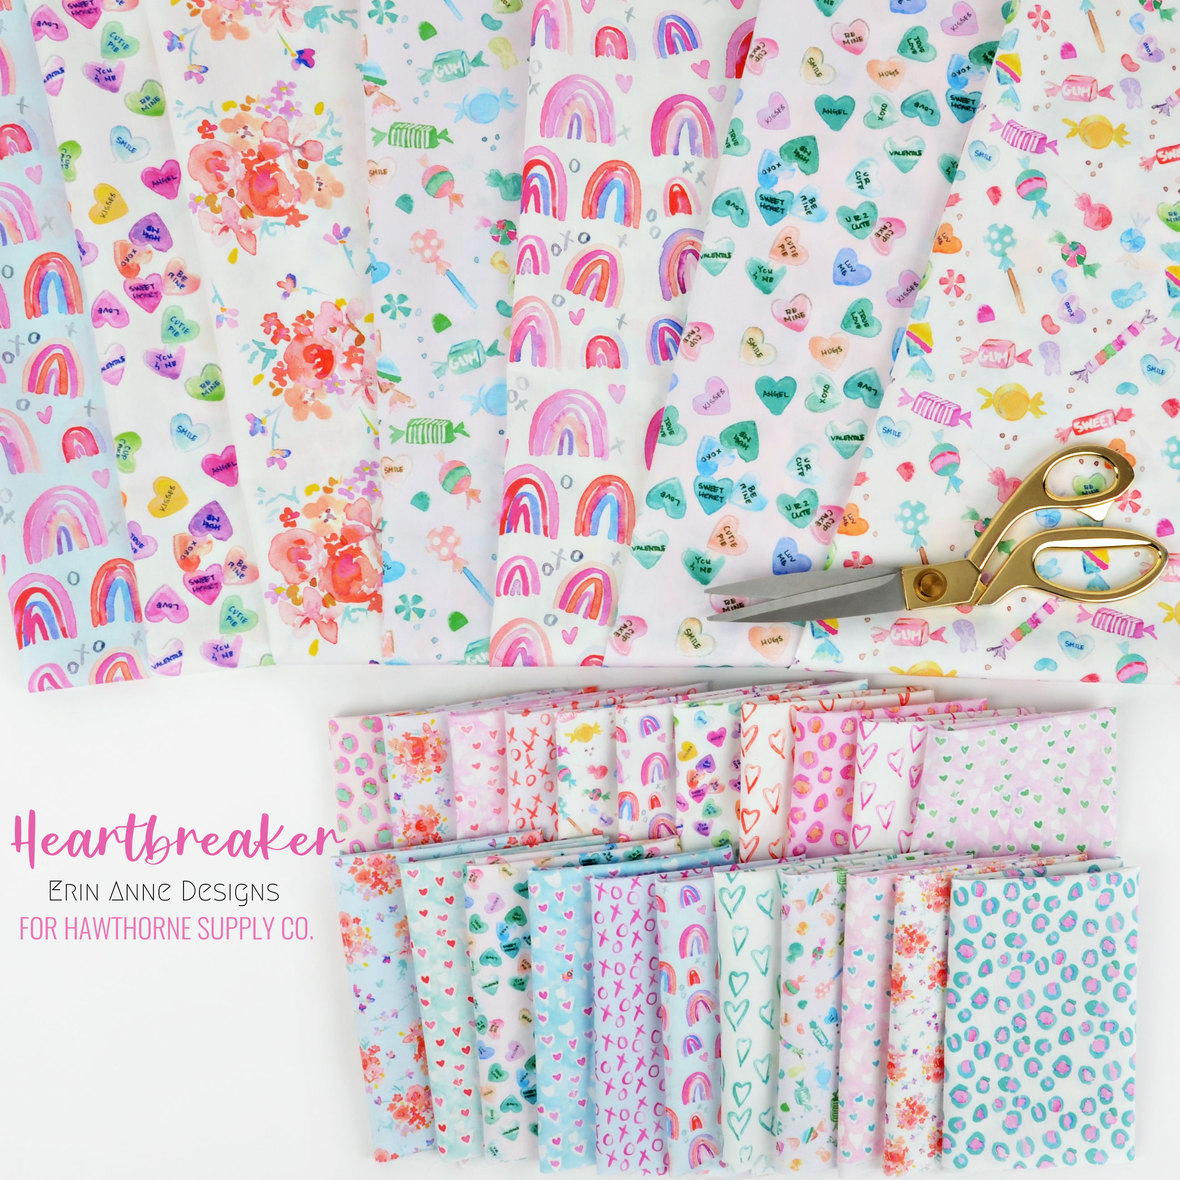 Erin-Anne-Heartbreaker-Watercolor-Fabric-at-Hawthorne-Supply-Co.